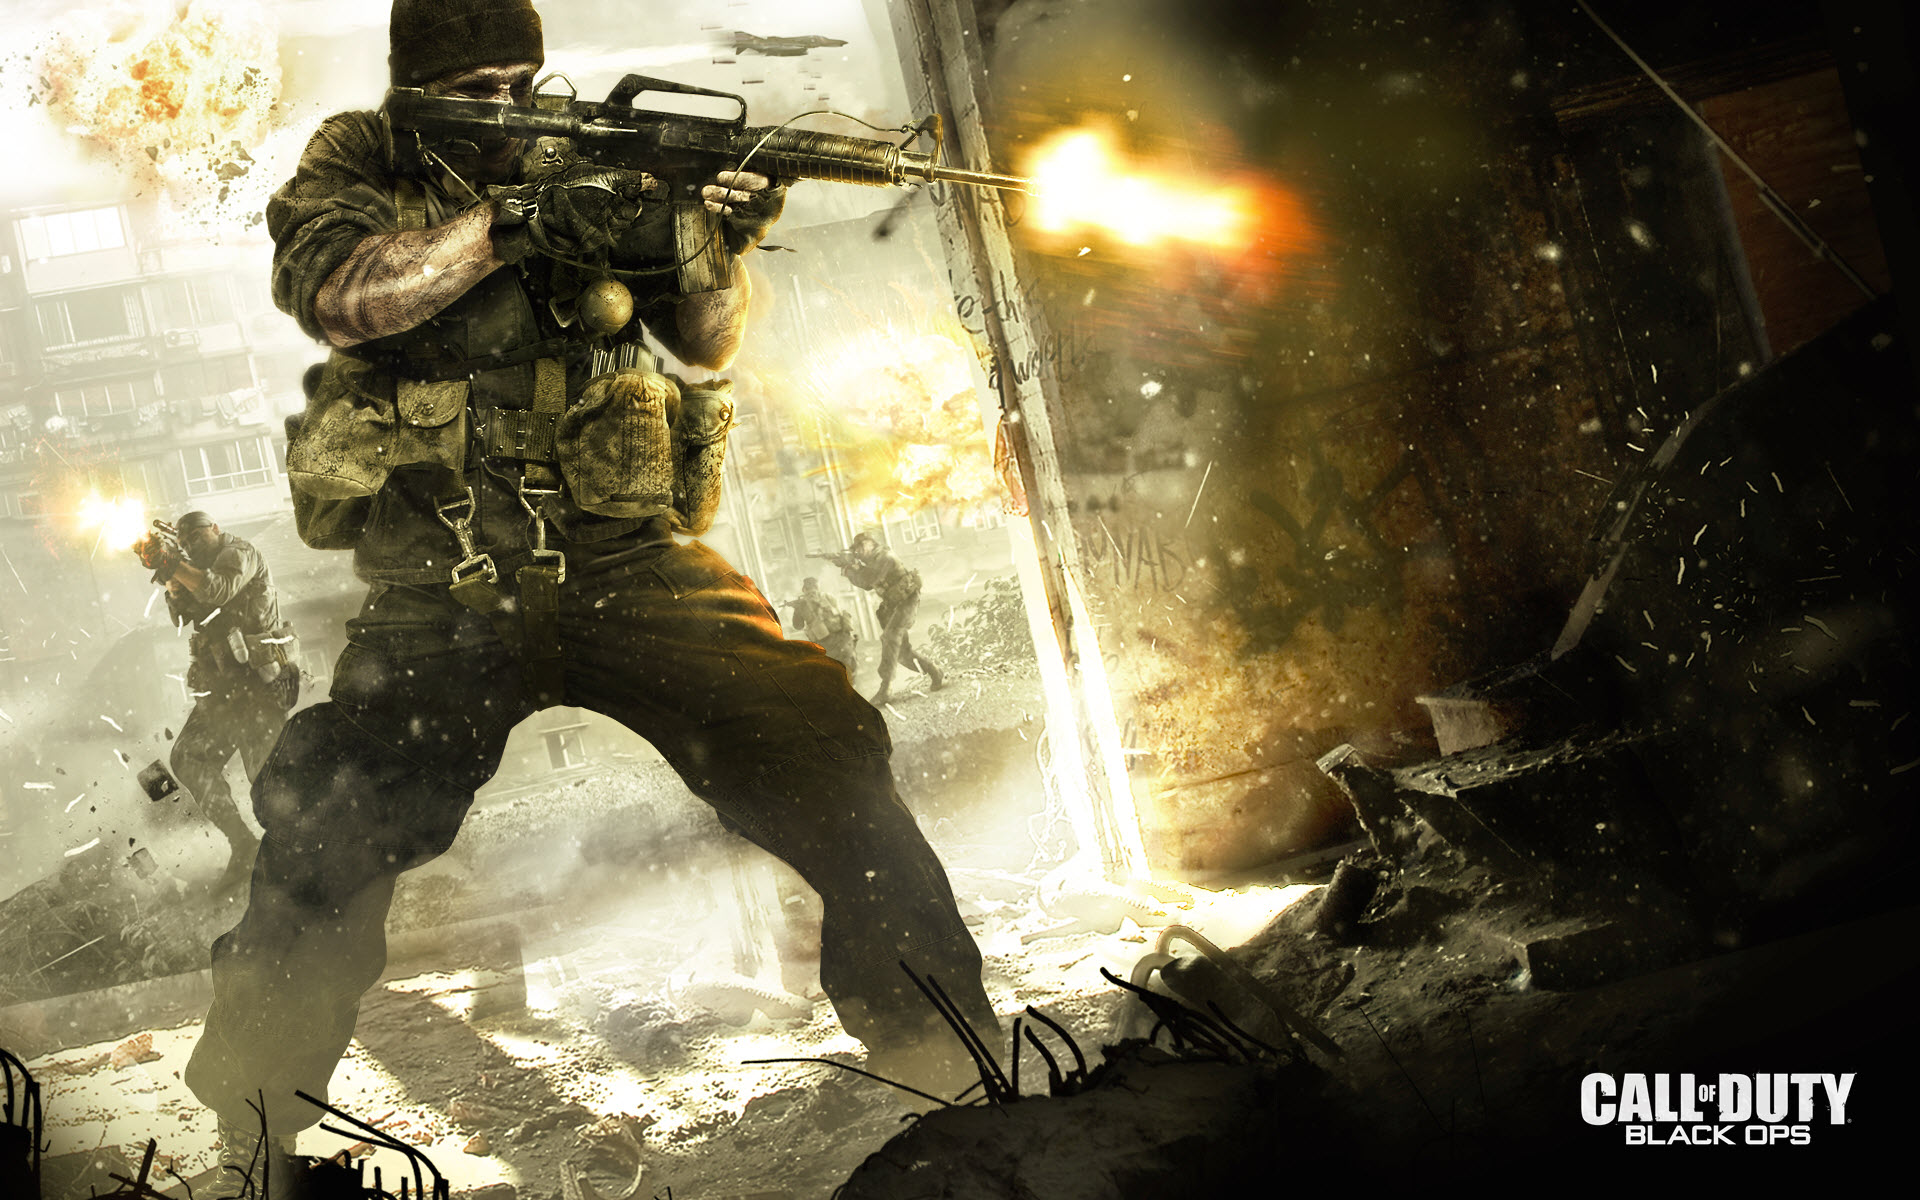 of Duty Black Ops Resimleri   Call of Duty Black Ops HD Wallpapers 1920x1200